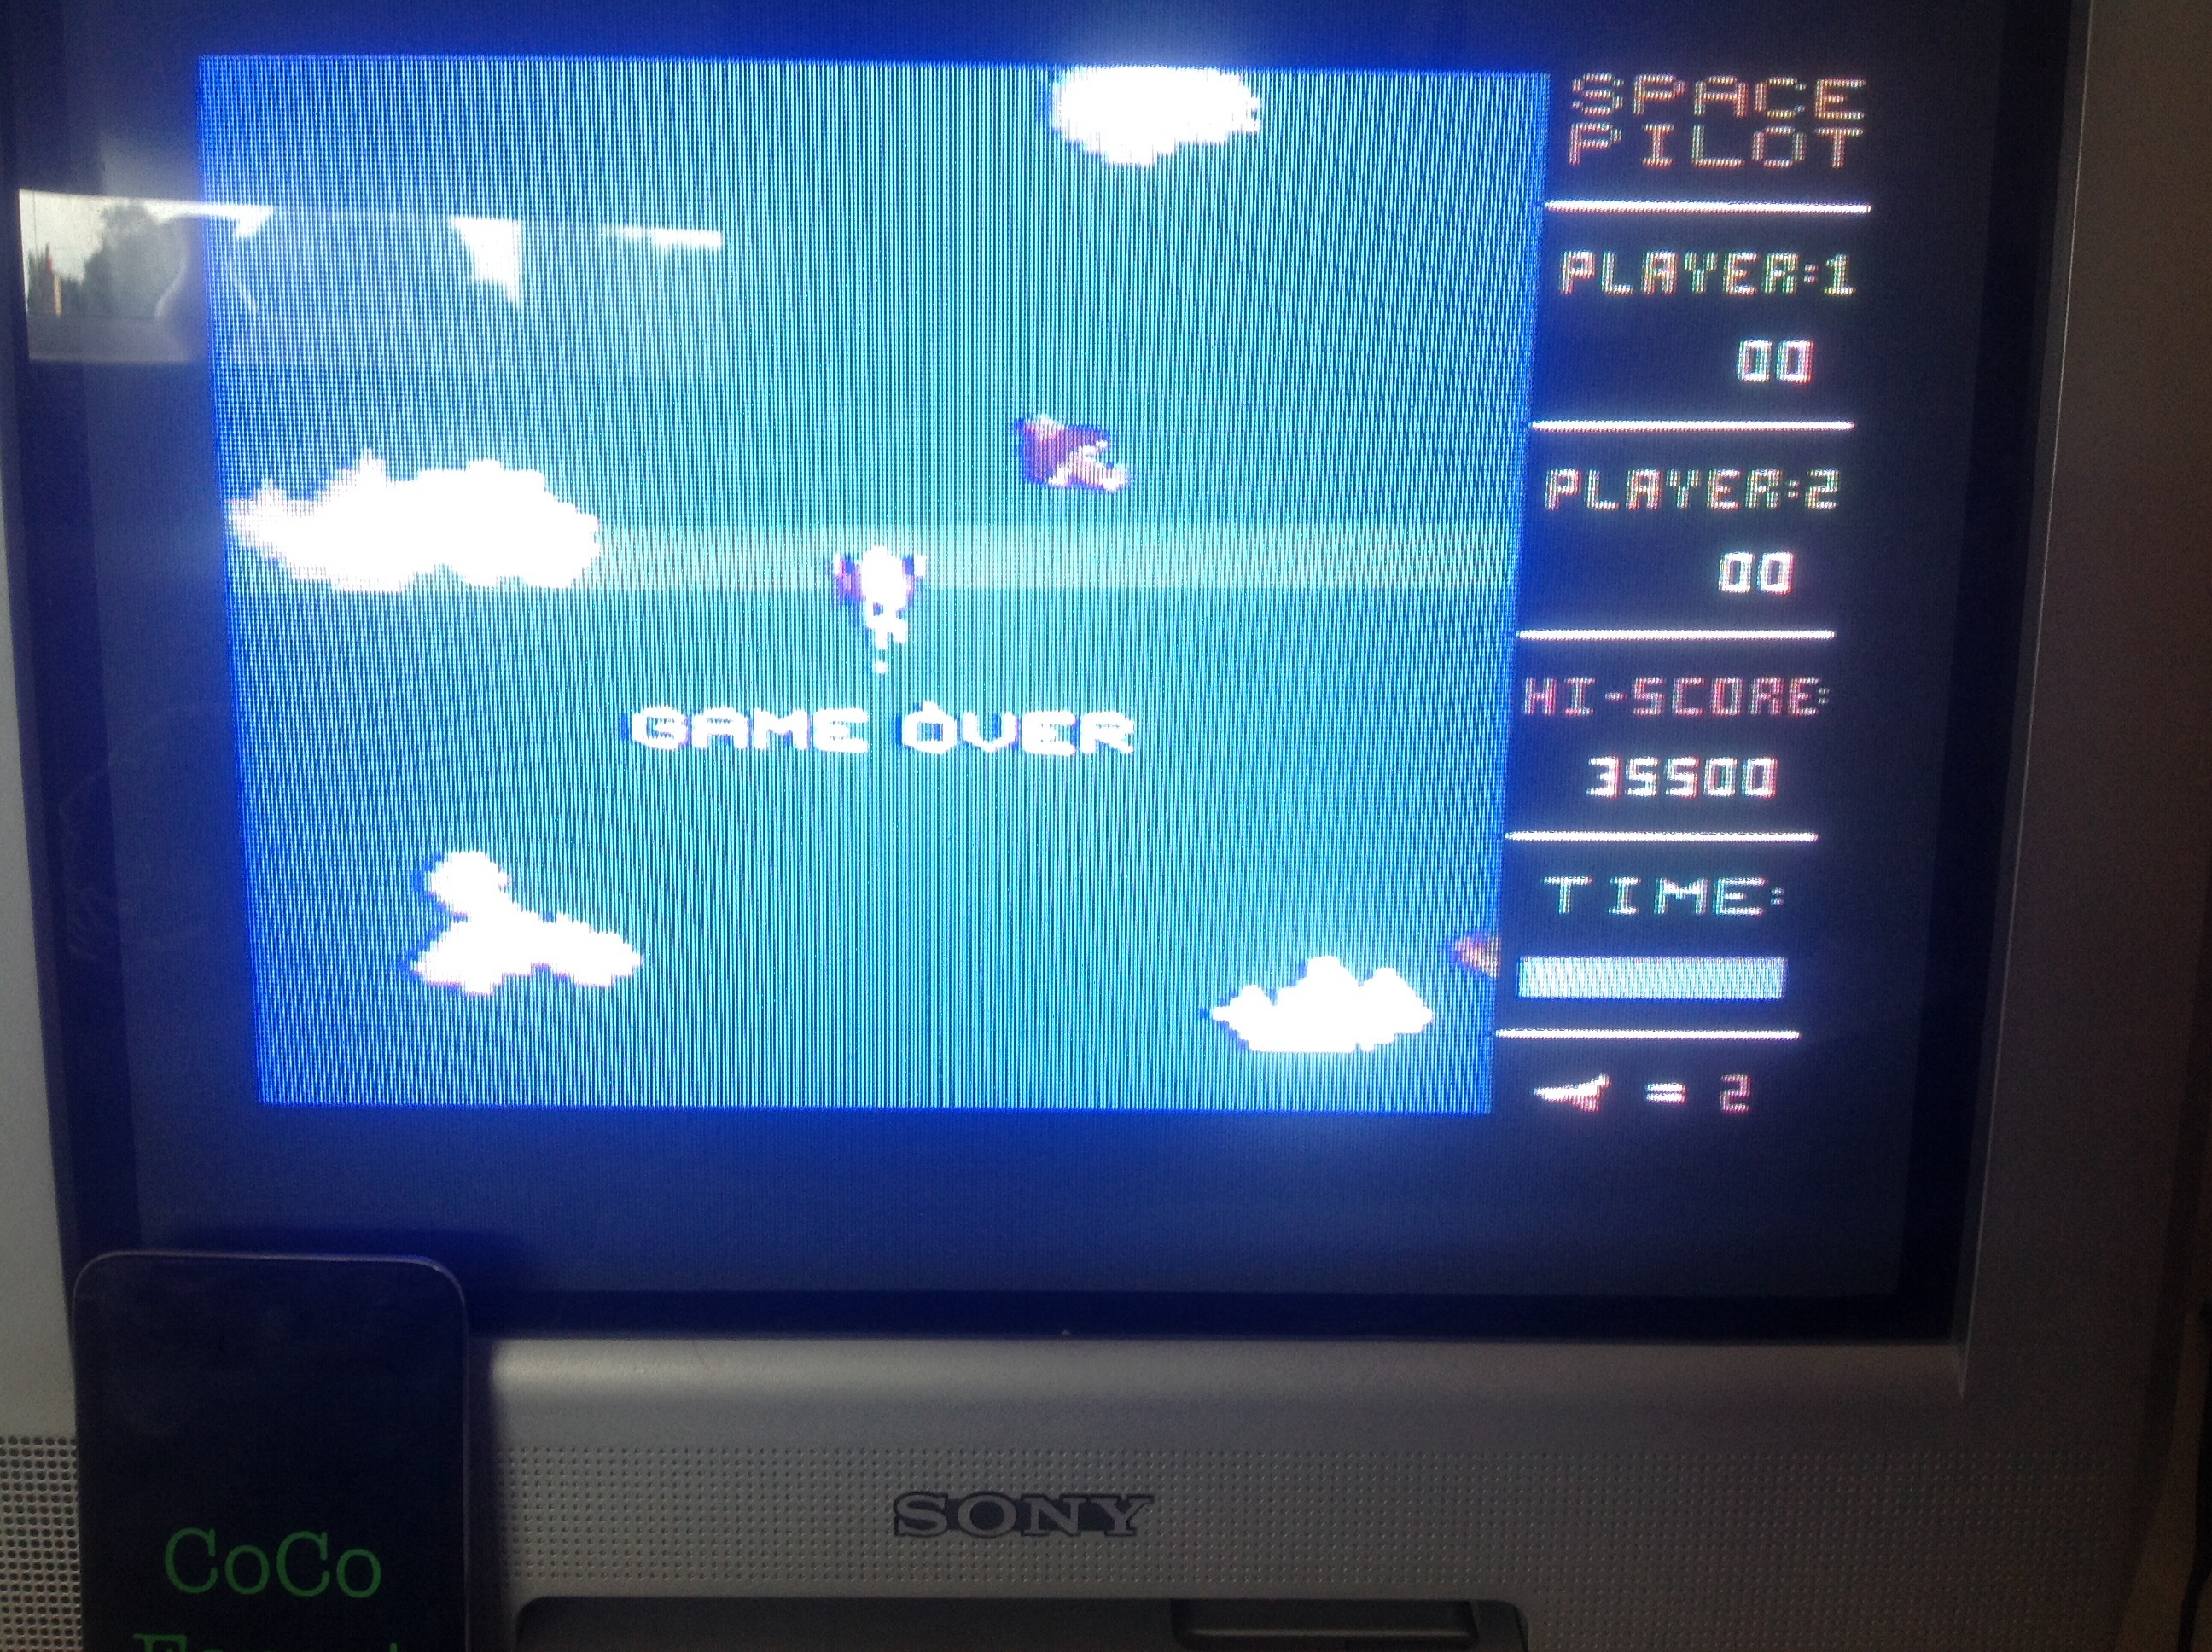 CoCoForest: Space Pilot (Commodore 64) 35,500 points on 2014-08-05 03:47:52